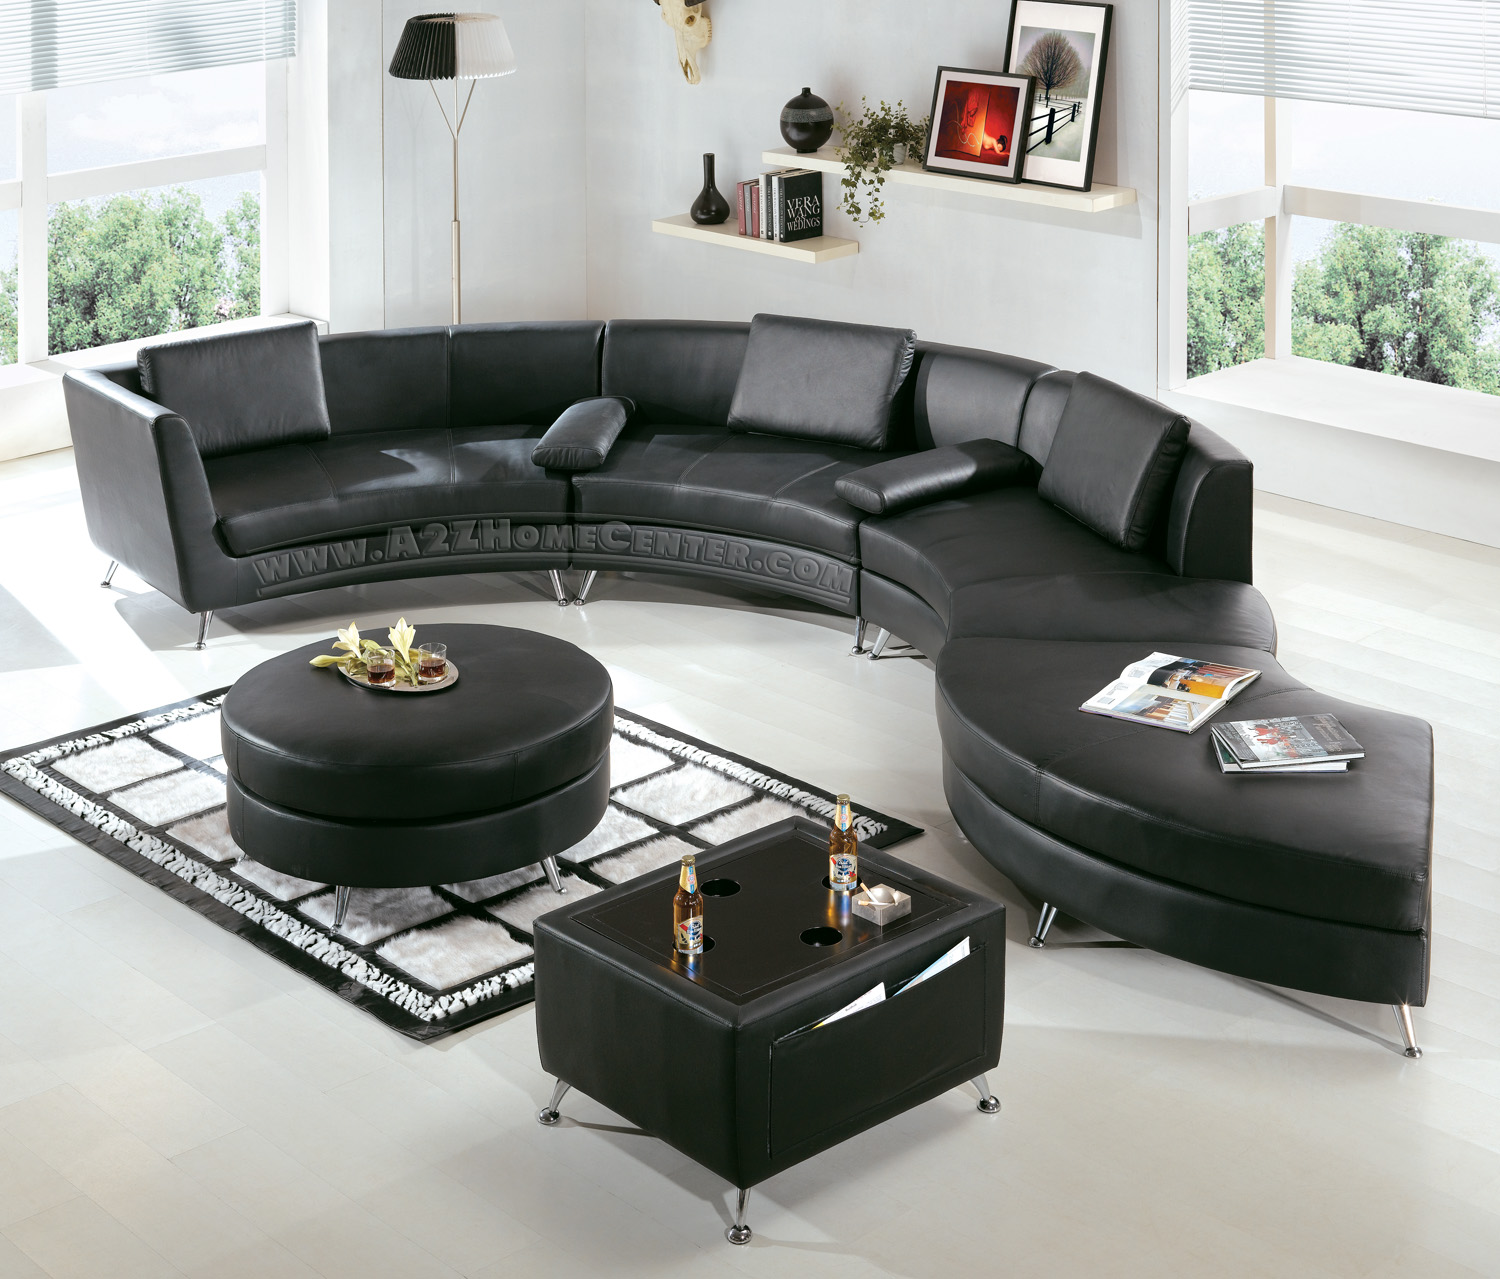 Trend home interior design 2011 modern furniture sofa variety ideas - New furniture design ...